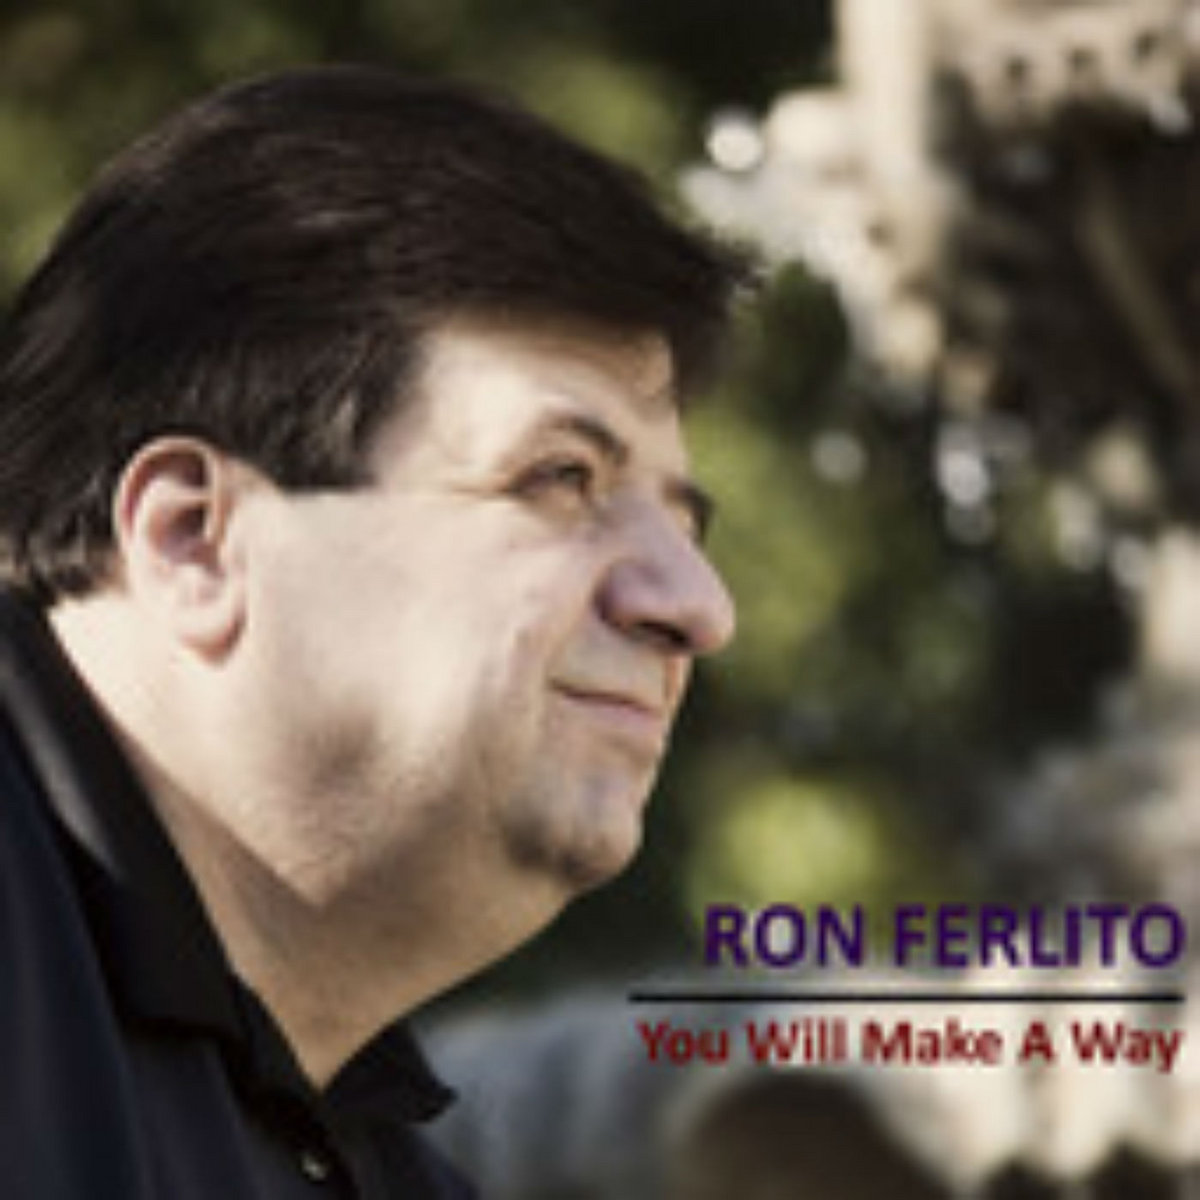 You Will Make A Way (Digital Single) by Ron Ferlito